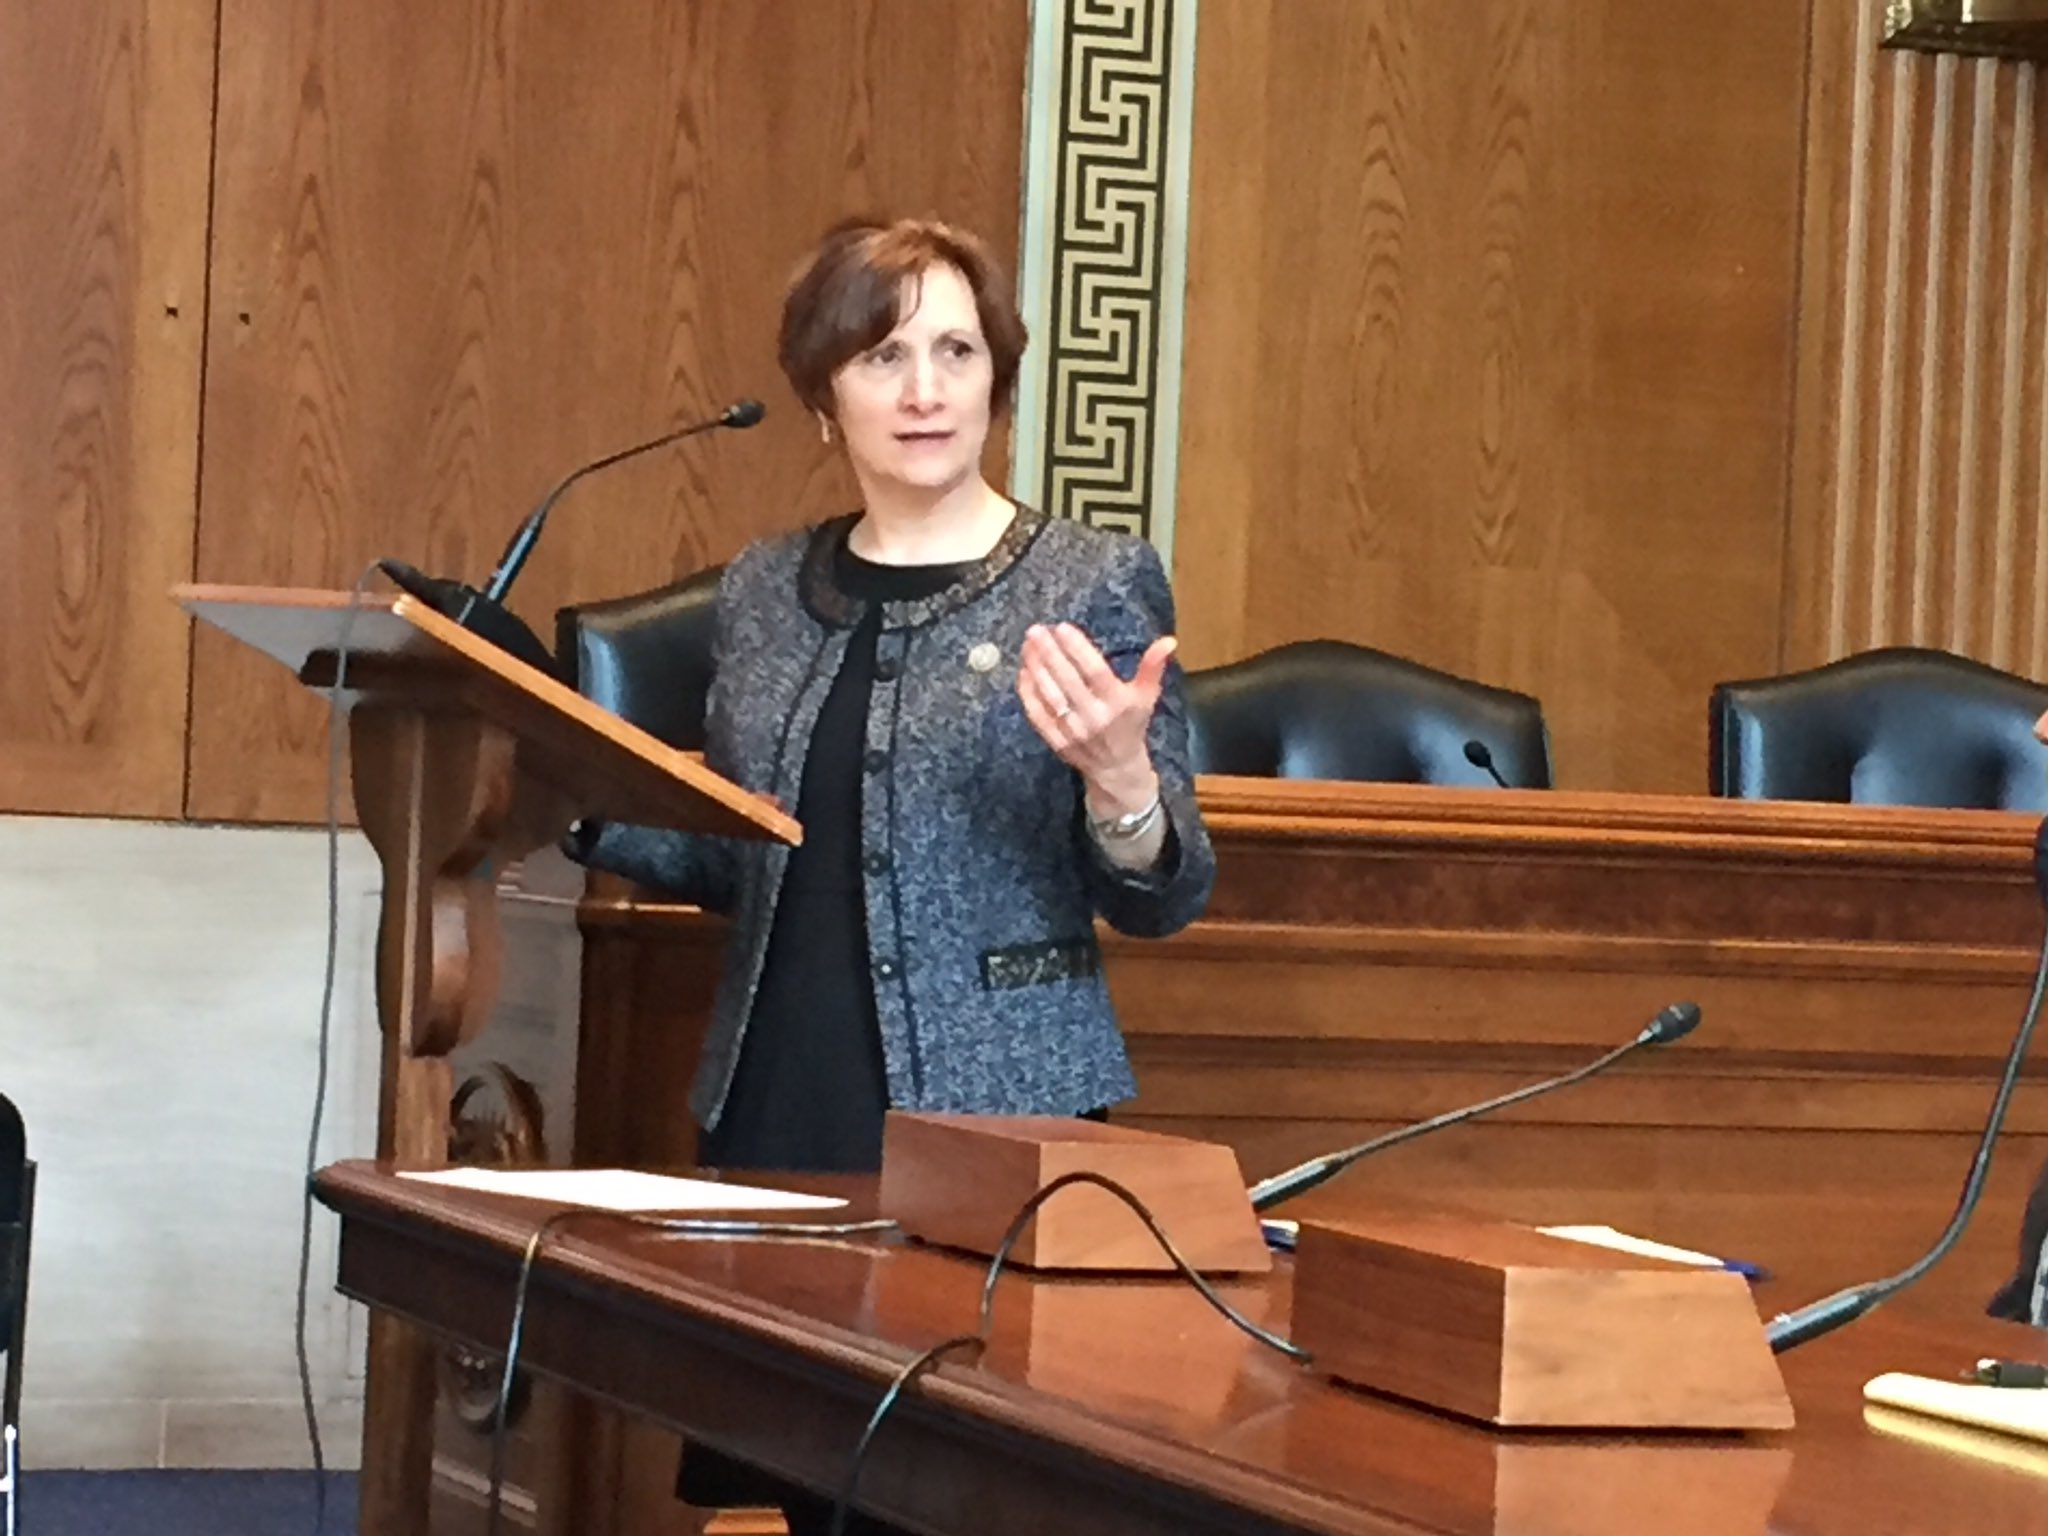 Oregon congresswomen @RepBonamici speaking to the key role of RELs supporting evidence use in ESSA and beyond @relnw #RELevant @KnowledgeAll https://t.co/YAHtfig8jB